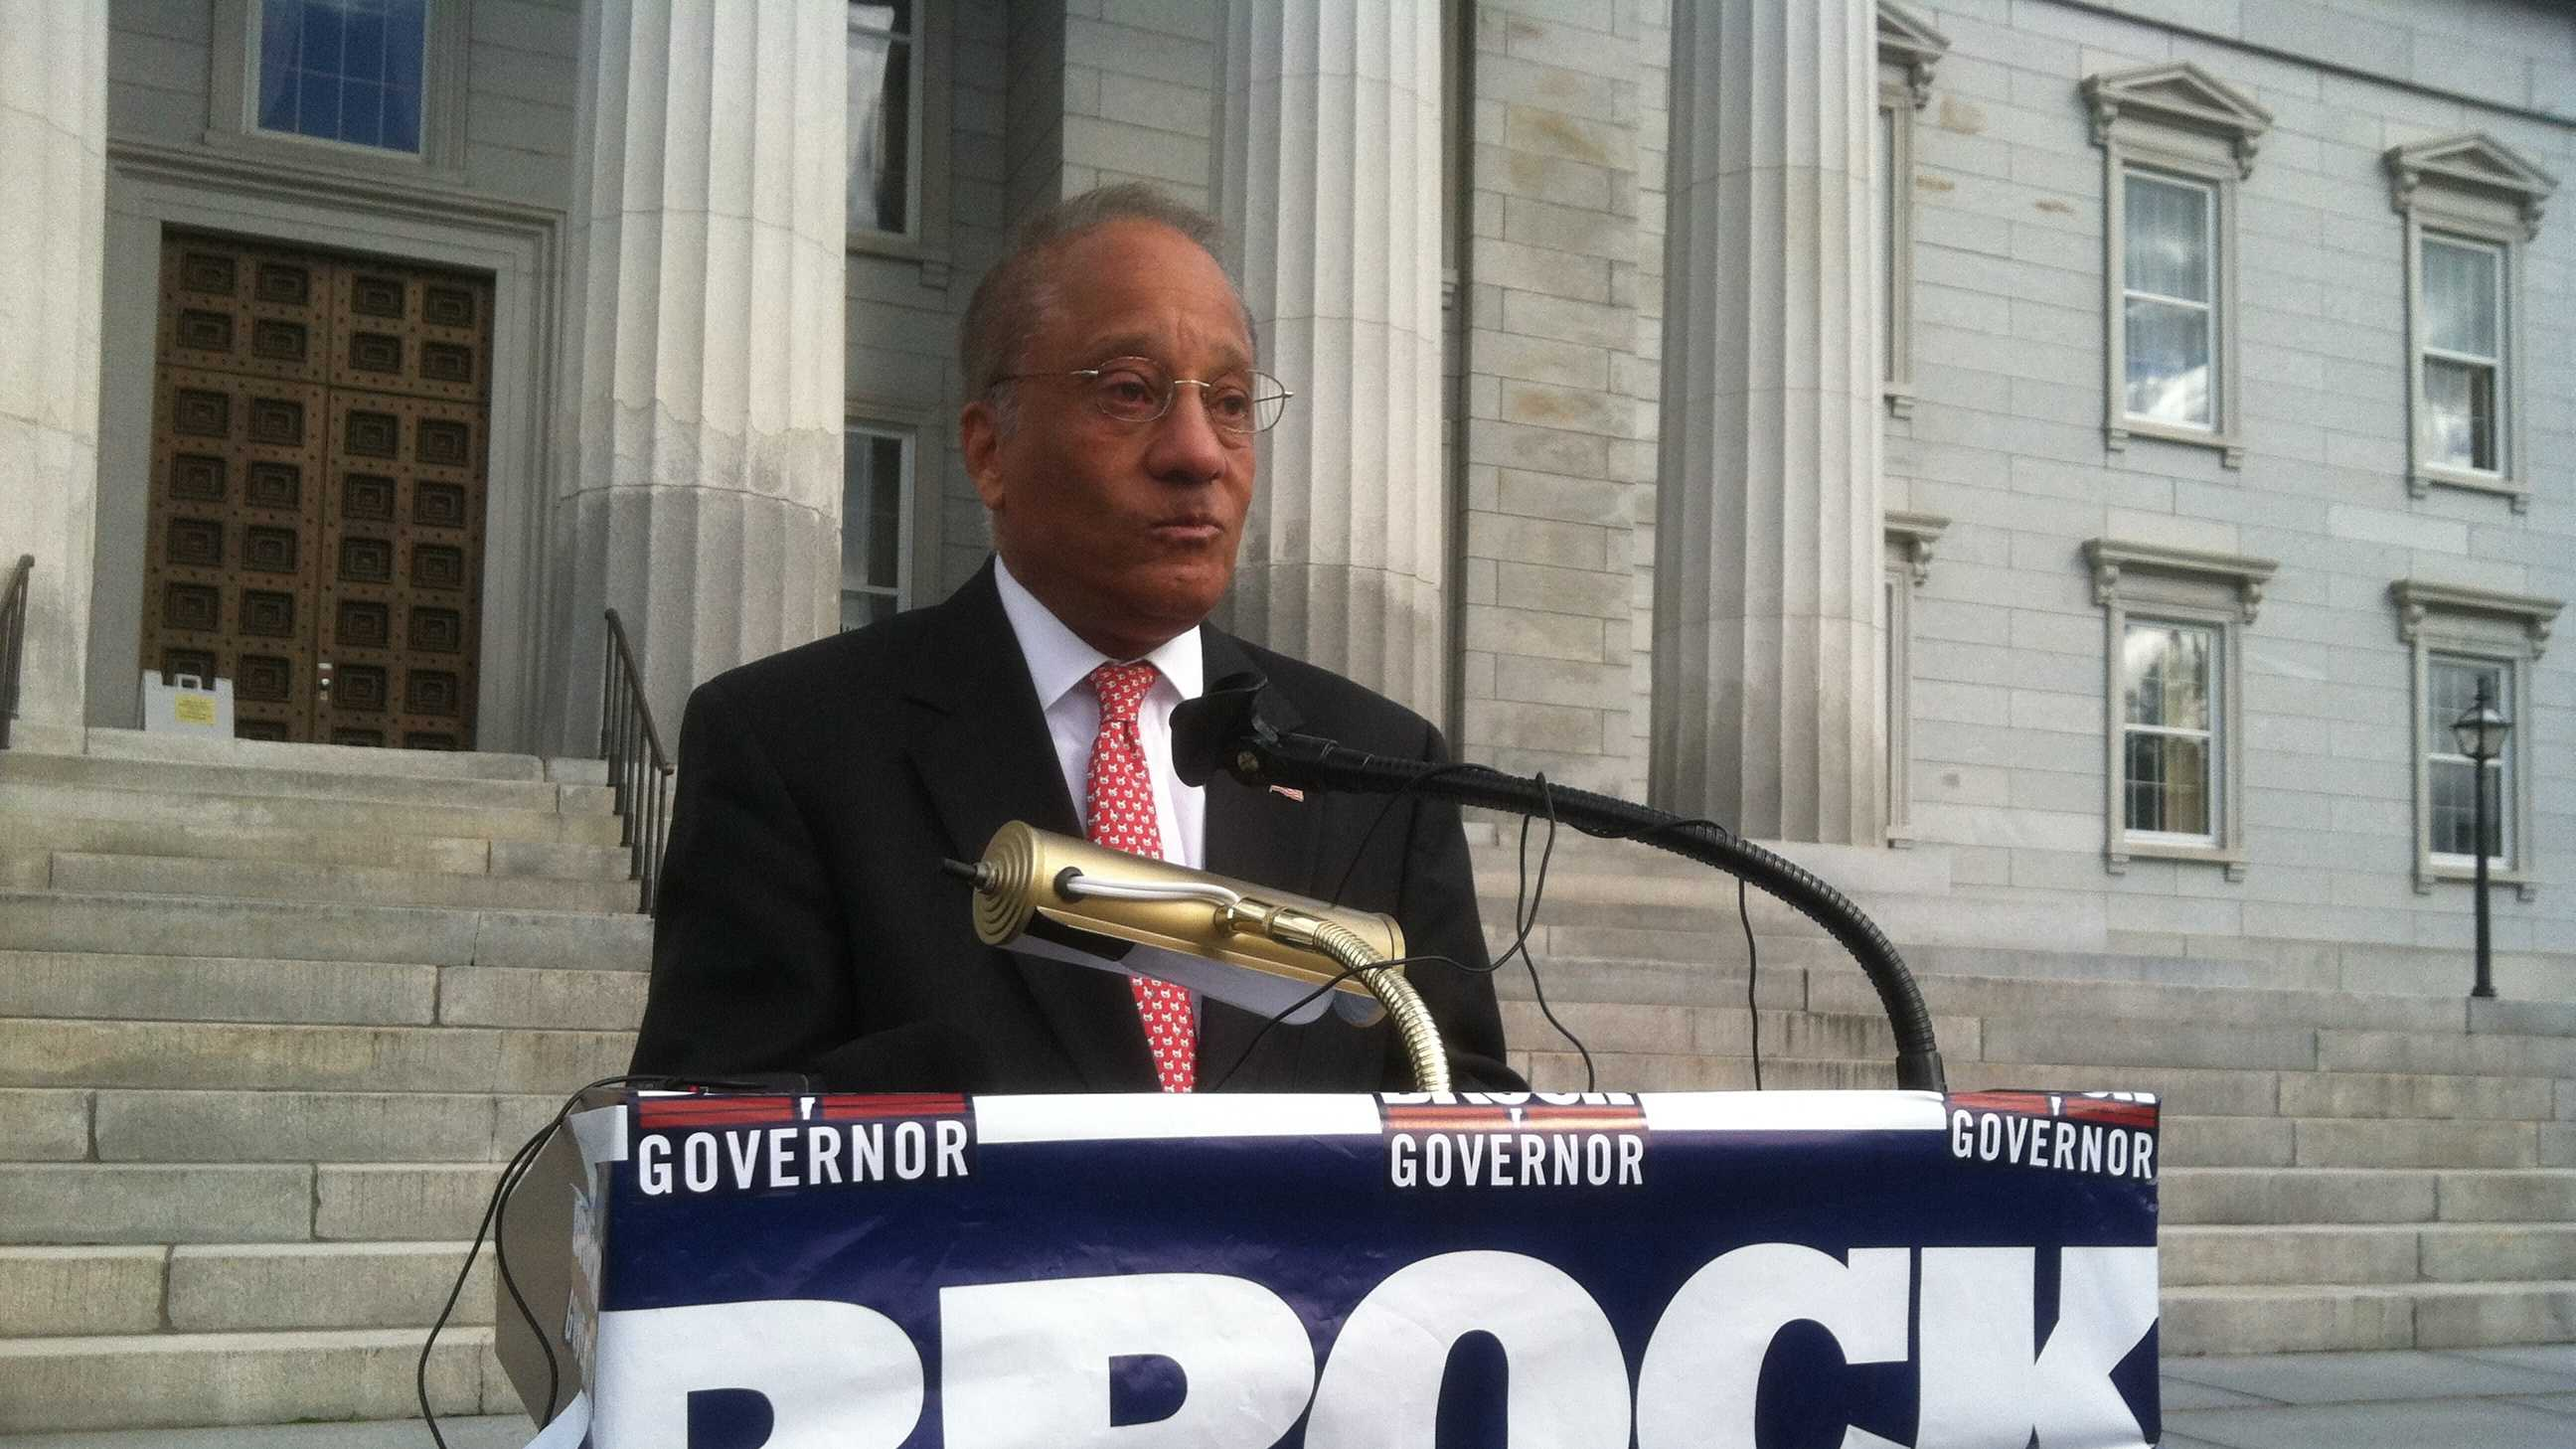 Gubernatorial Candidate Randy Brock slams Shumlin for being out of office for nearly 4 months.